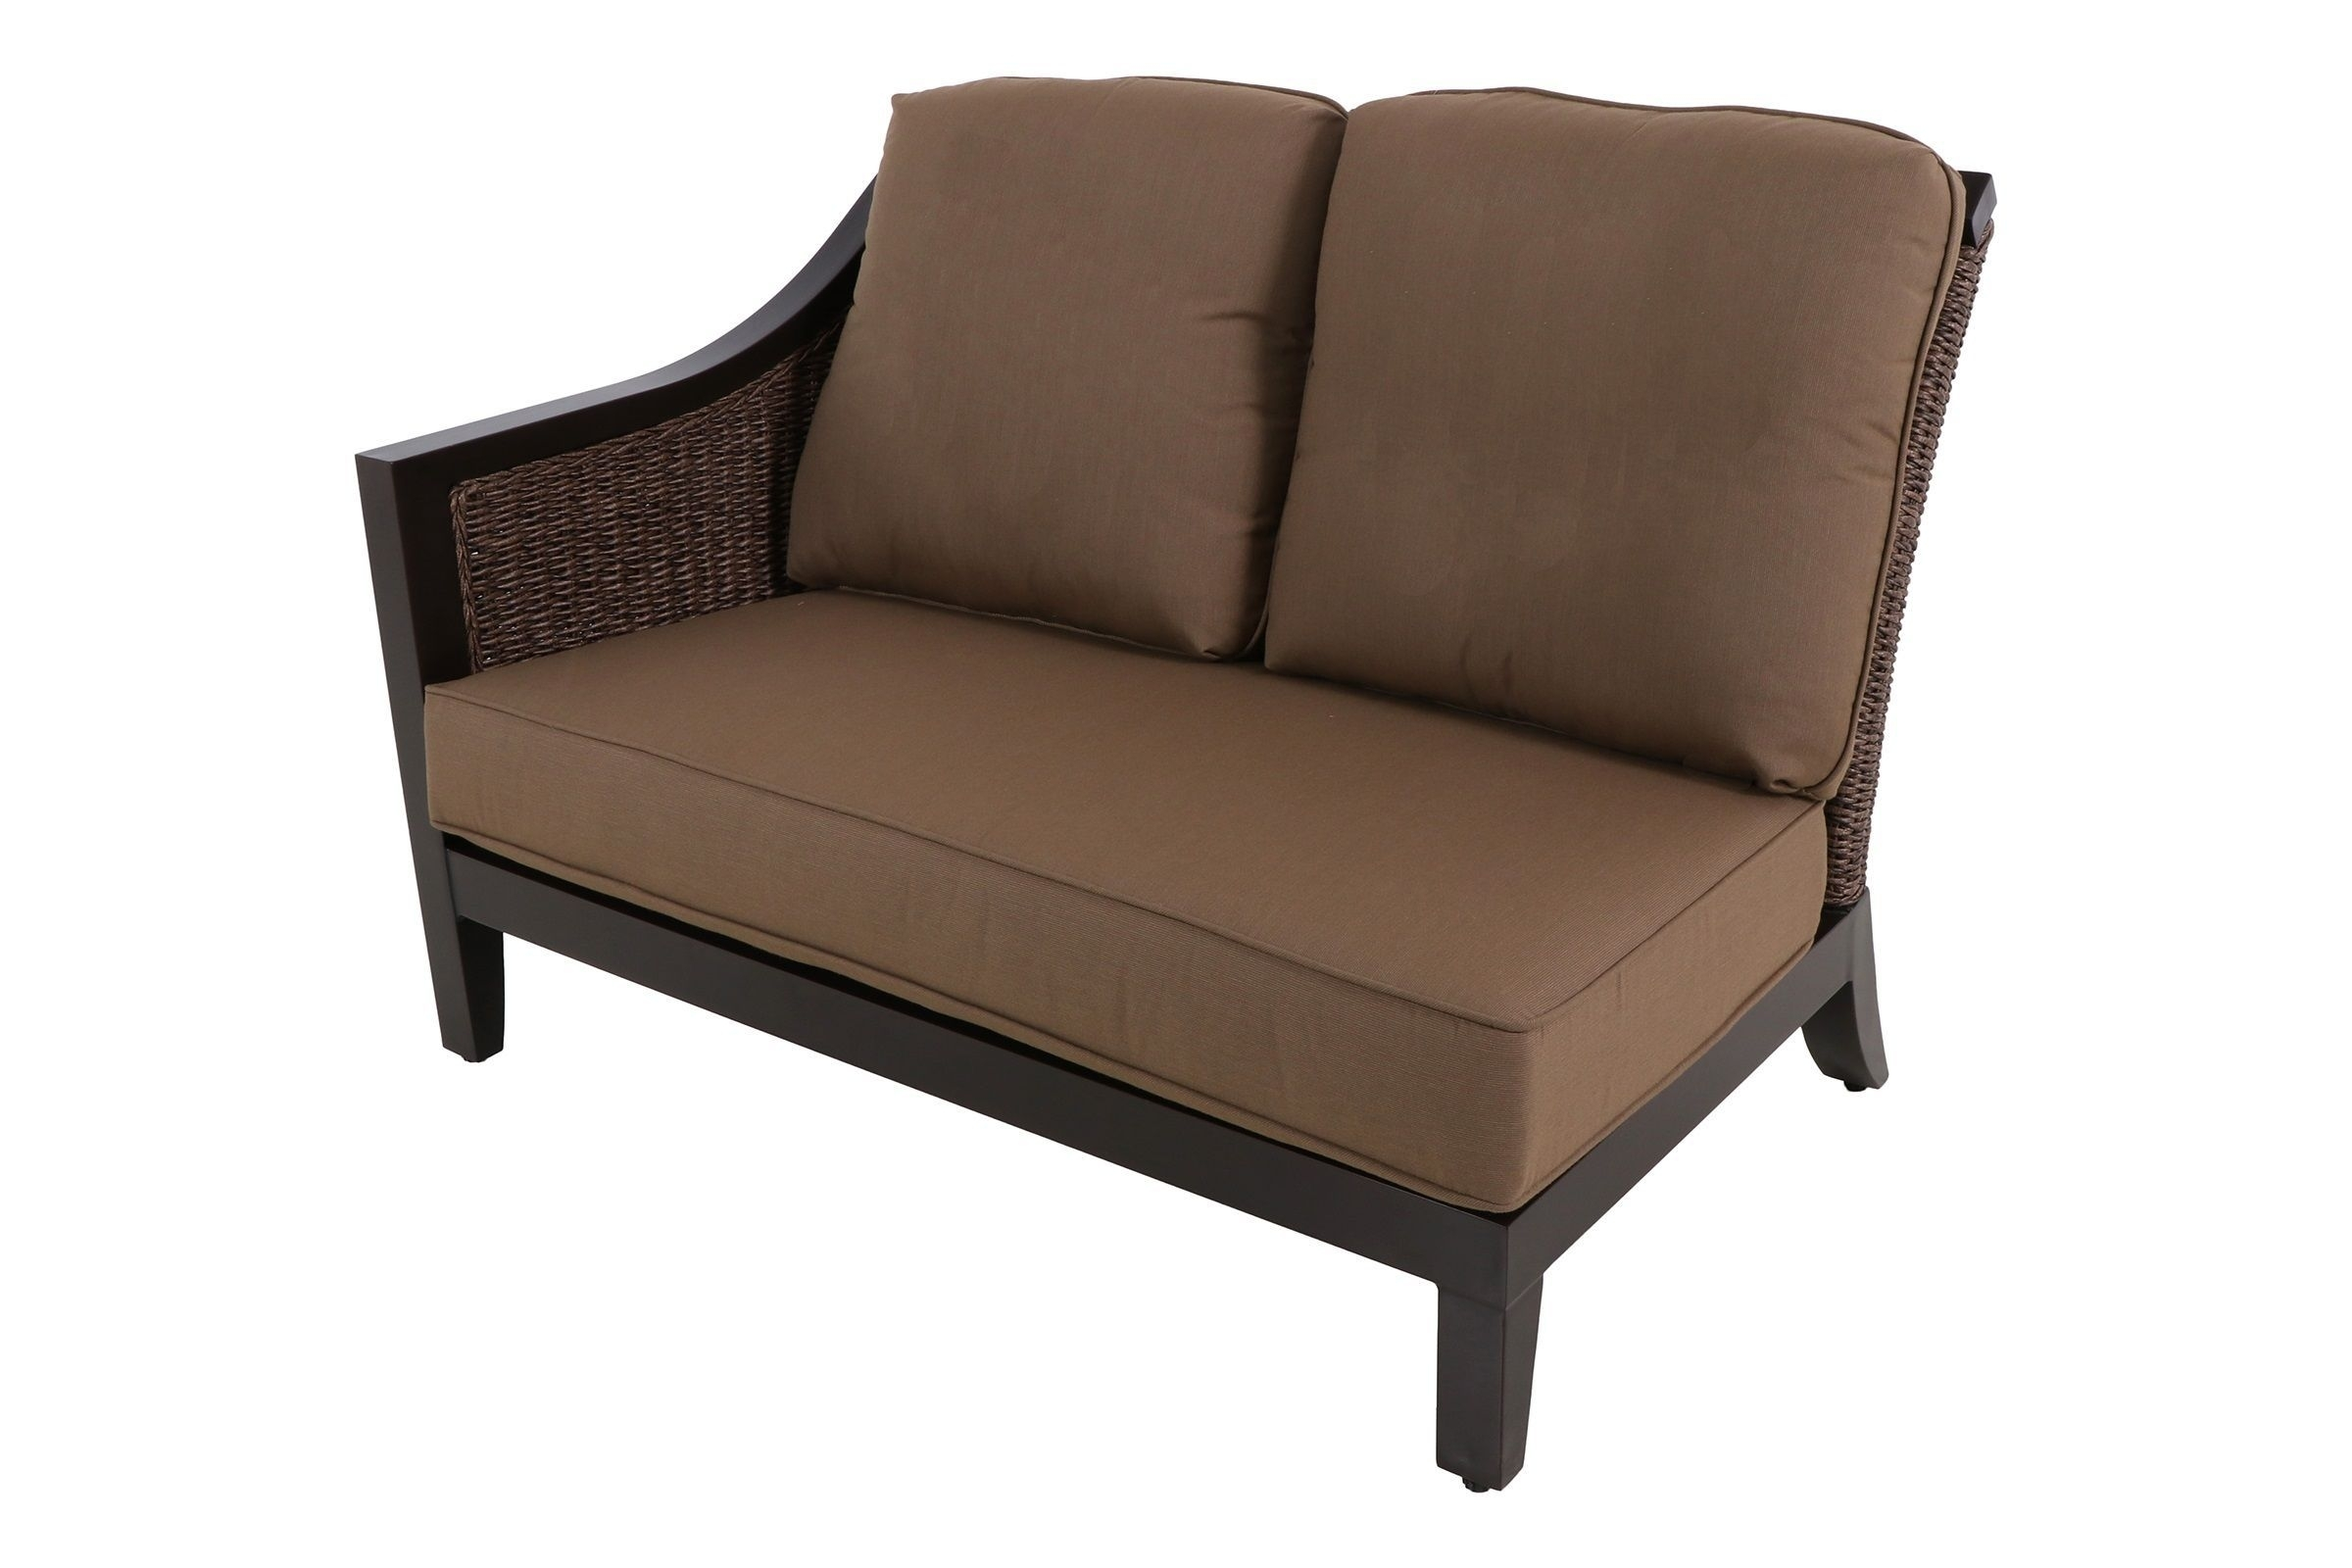 Loveseat Sectional | Whitecraftwoodard Mona Wicker Right Arm Intended For Taron 3 Piece Power Reclining Sectionals With Right Facing Console Loveseat (Image 11 of 20)